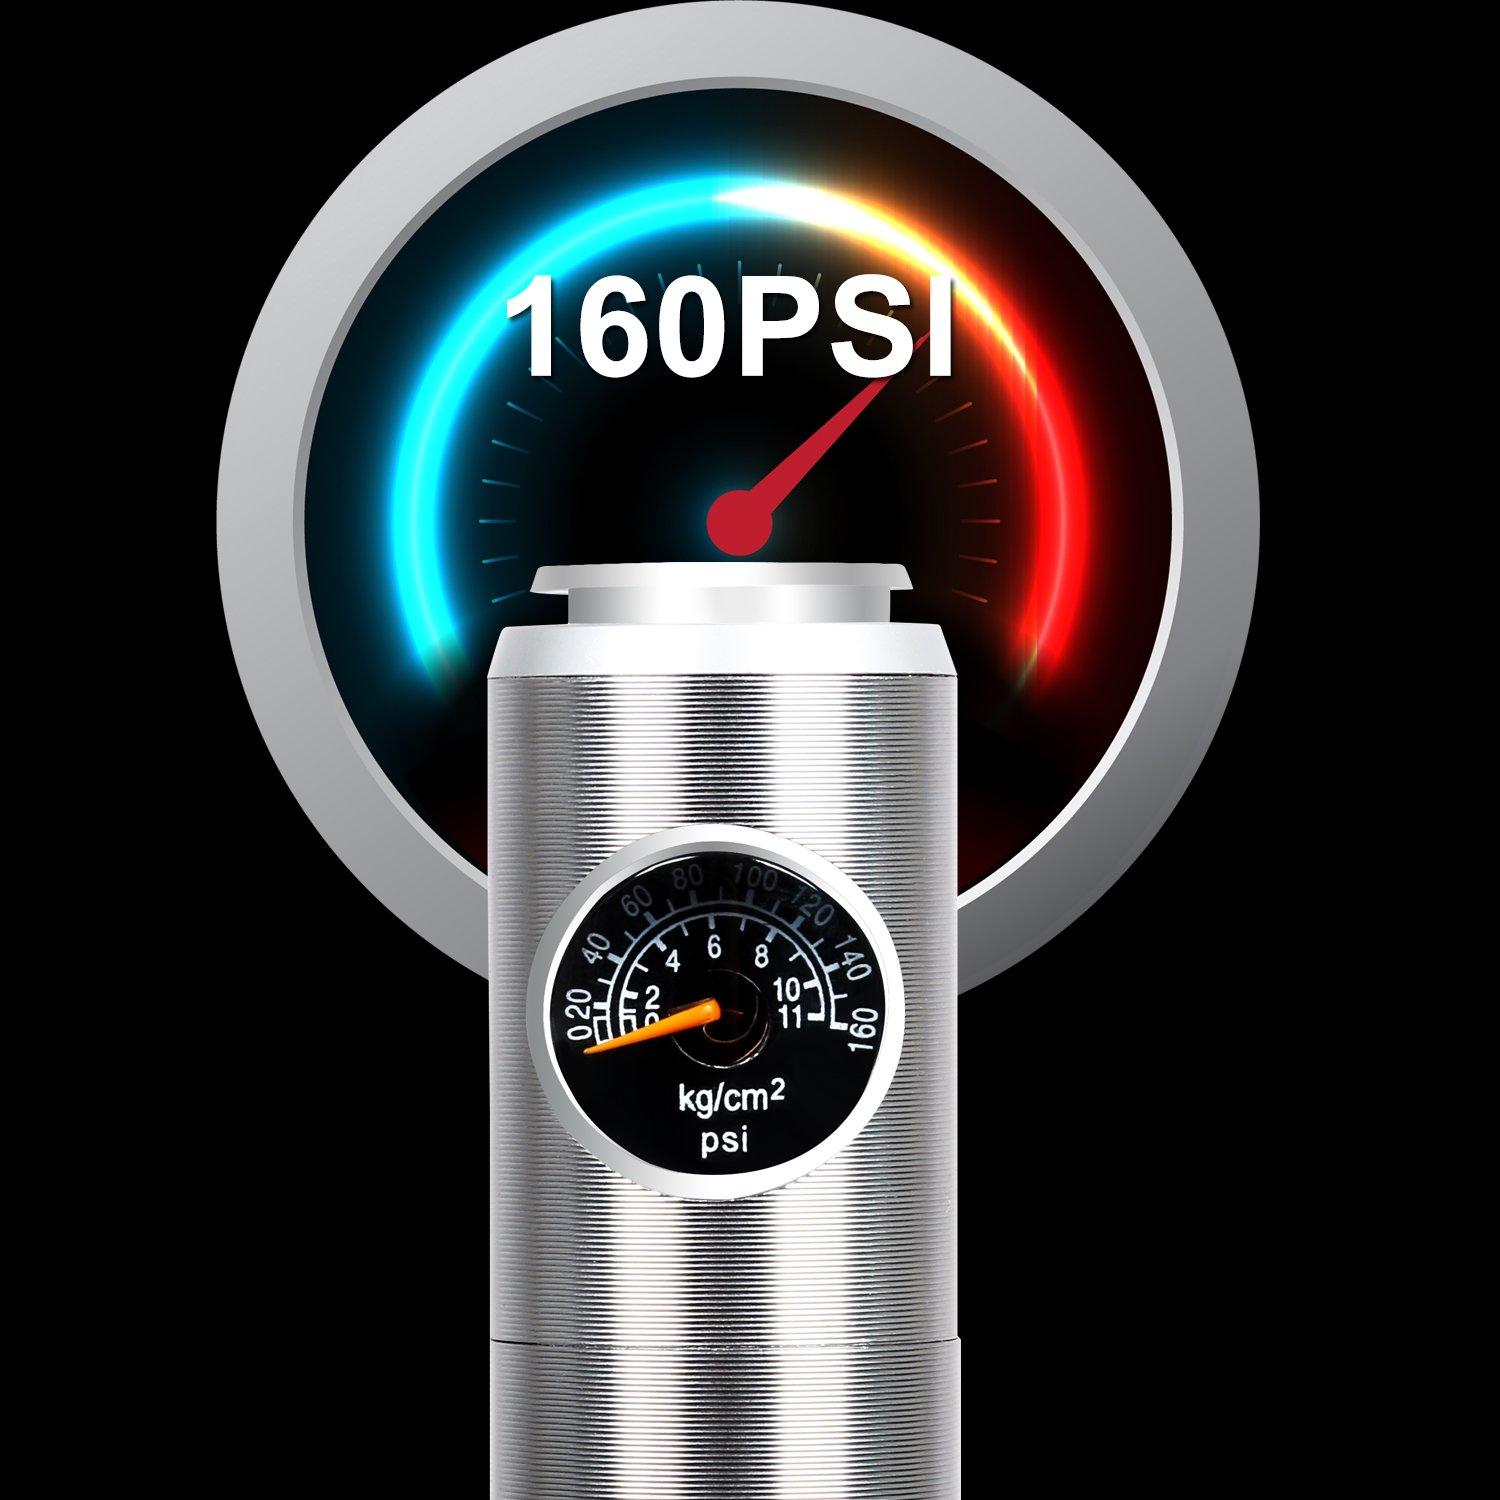 ICOCOPRO Mini Bike Pump with Digital Gauge-Reliable Hand Air Pump-Compatible Schrader Presta Bicycle Tire Pump-Lightweight & Powerful by ICOCOPRO (Image #2)